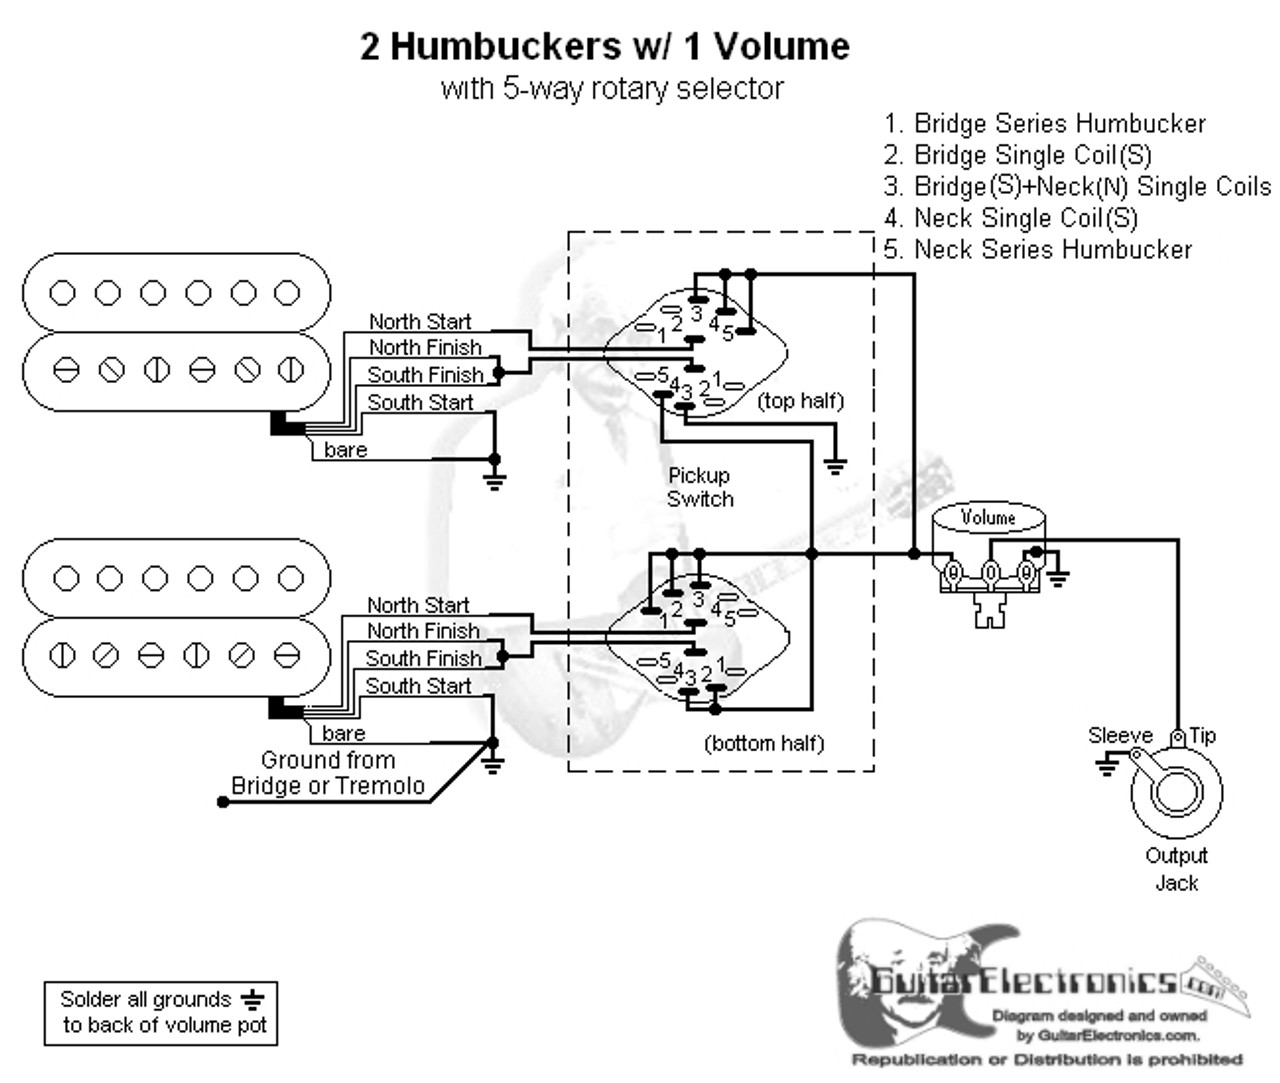 rotary coil wiring diagram wiring diagrams wni 2 humbuckers 5 way rotary switch 1 volume 00 [ 1280 x 1083 Pixel ]